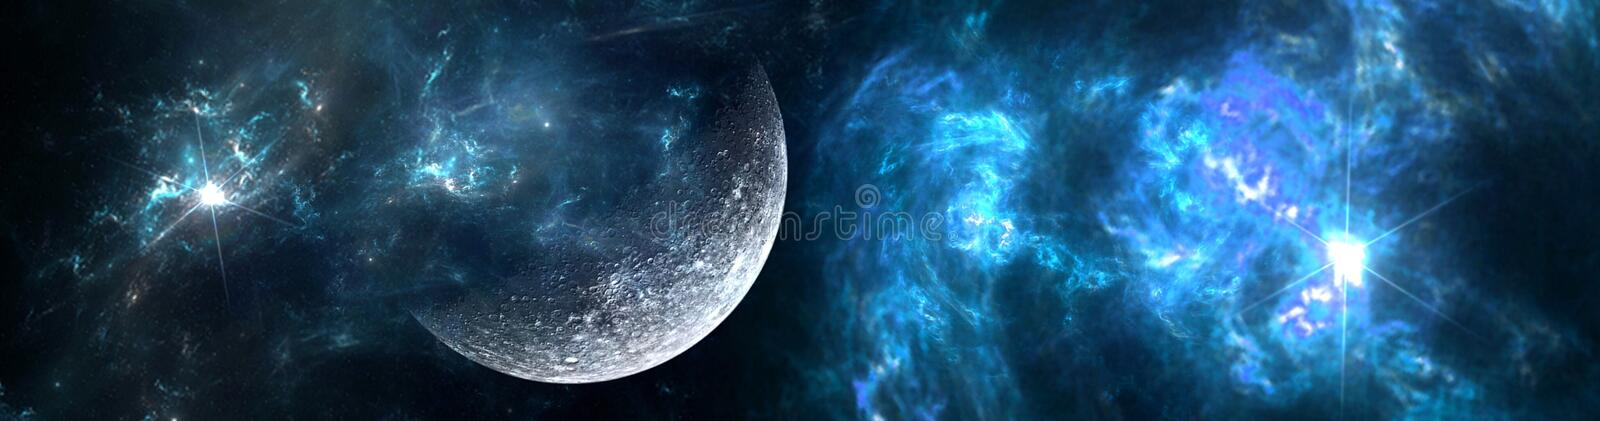 Planets and galaxy, science fiction wallpaper. Beauty of deep space. Billions of galaxy in the universe Cosmic art background stock photo